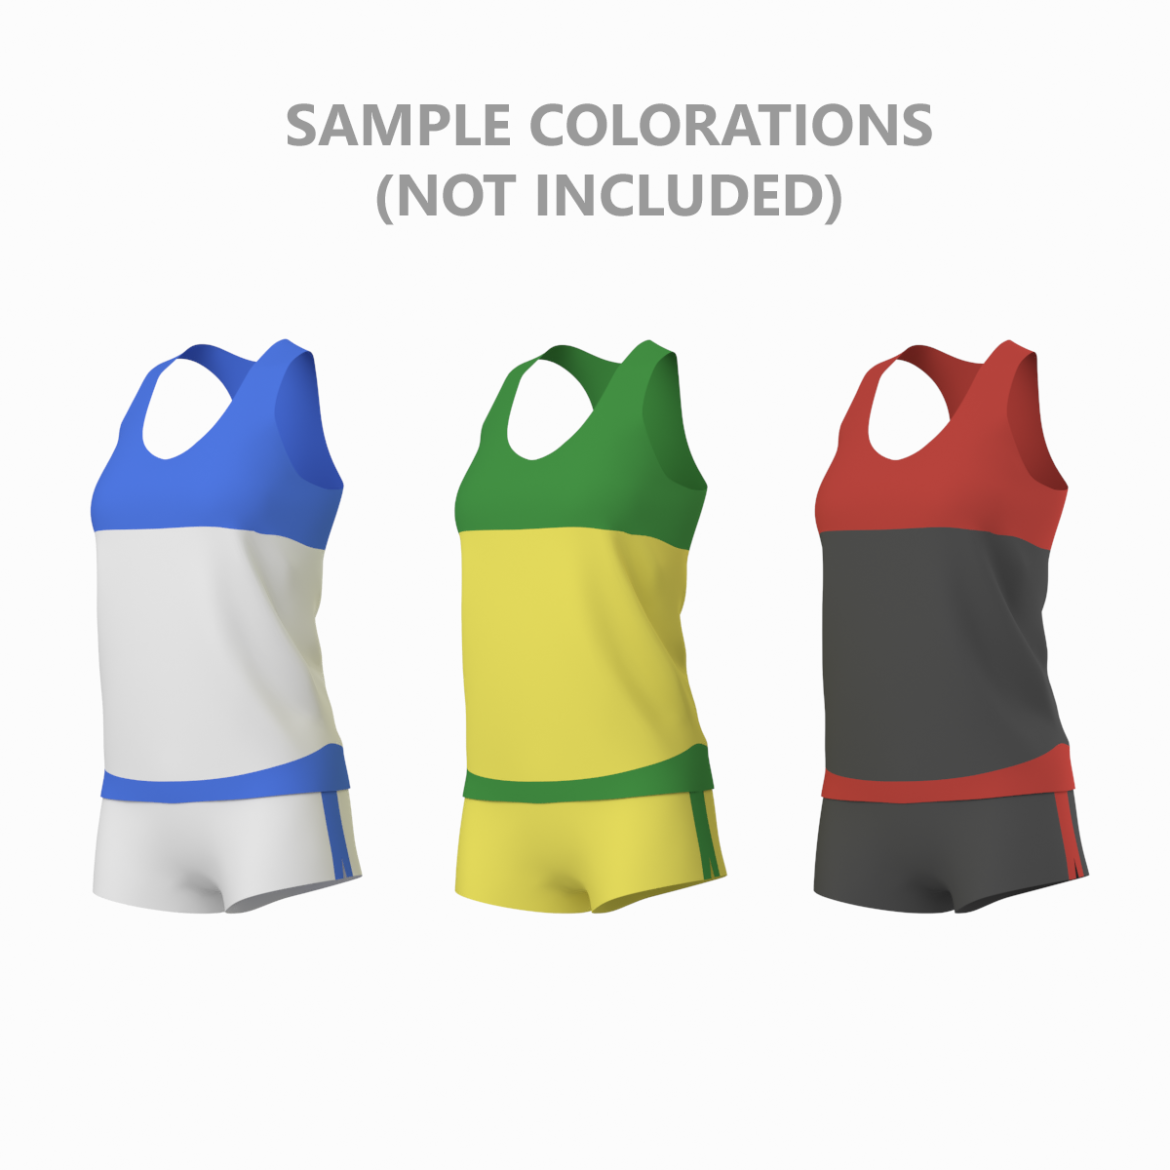 woman sportswear 03 base mesh design kit 3d model 3ds max fbx blend c4d dae ma mb  obj ztl 321878